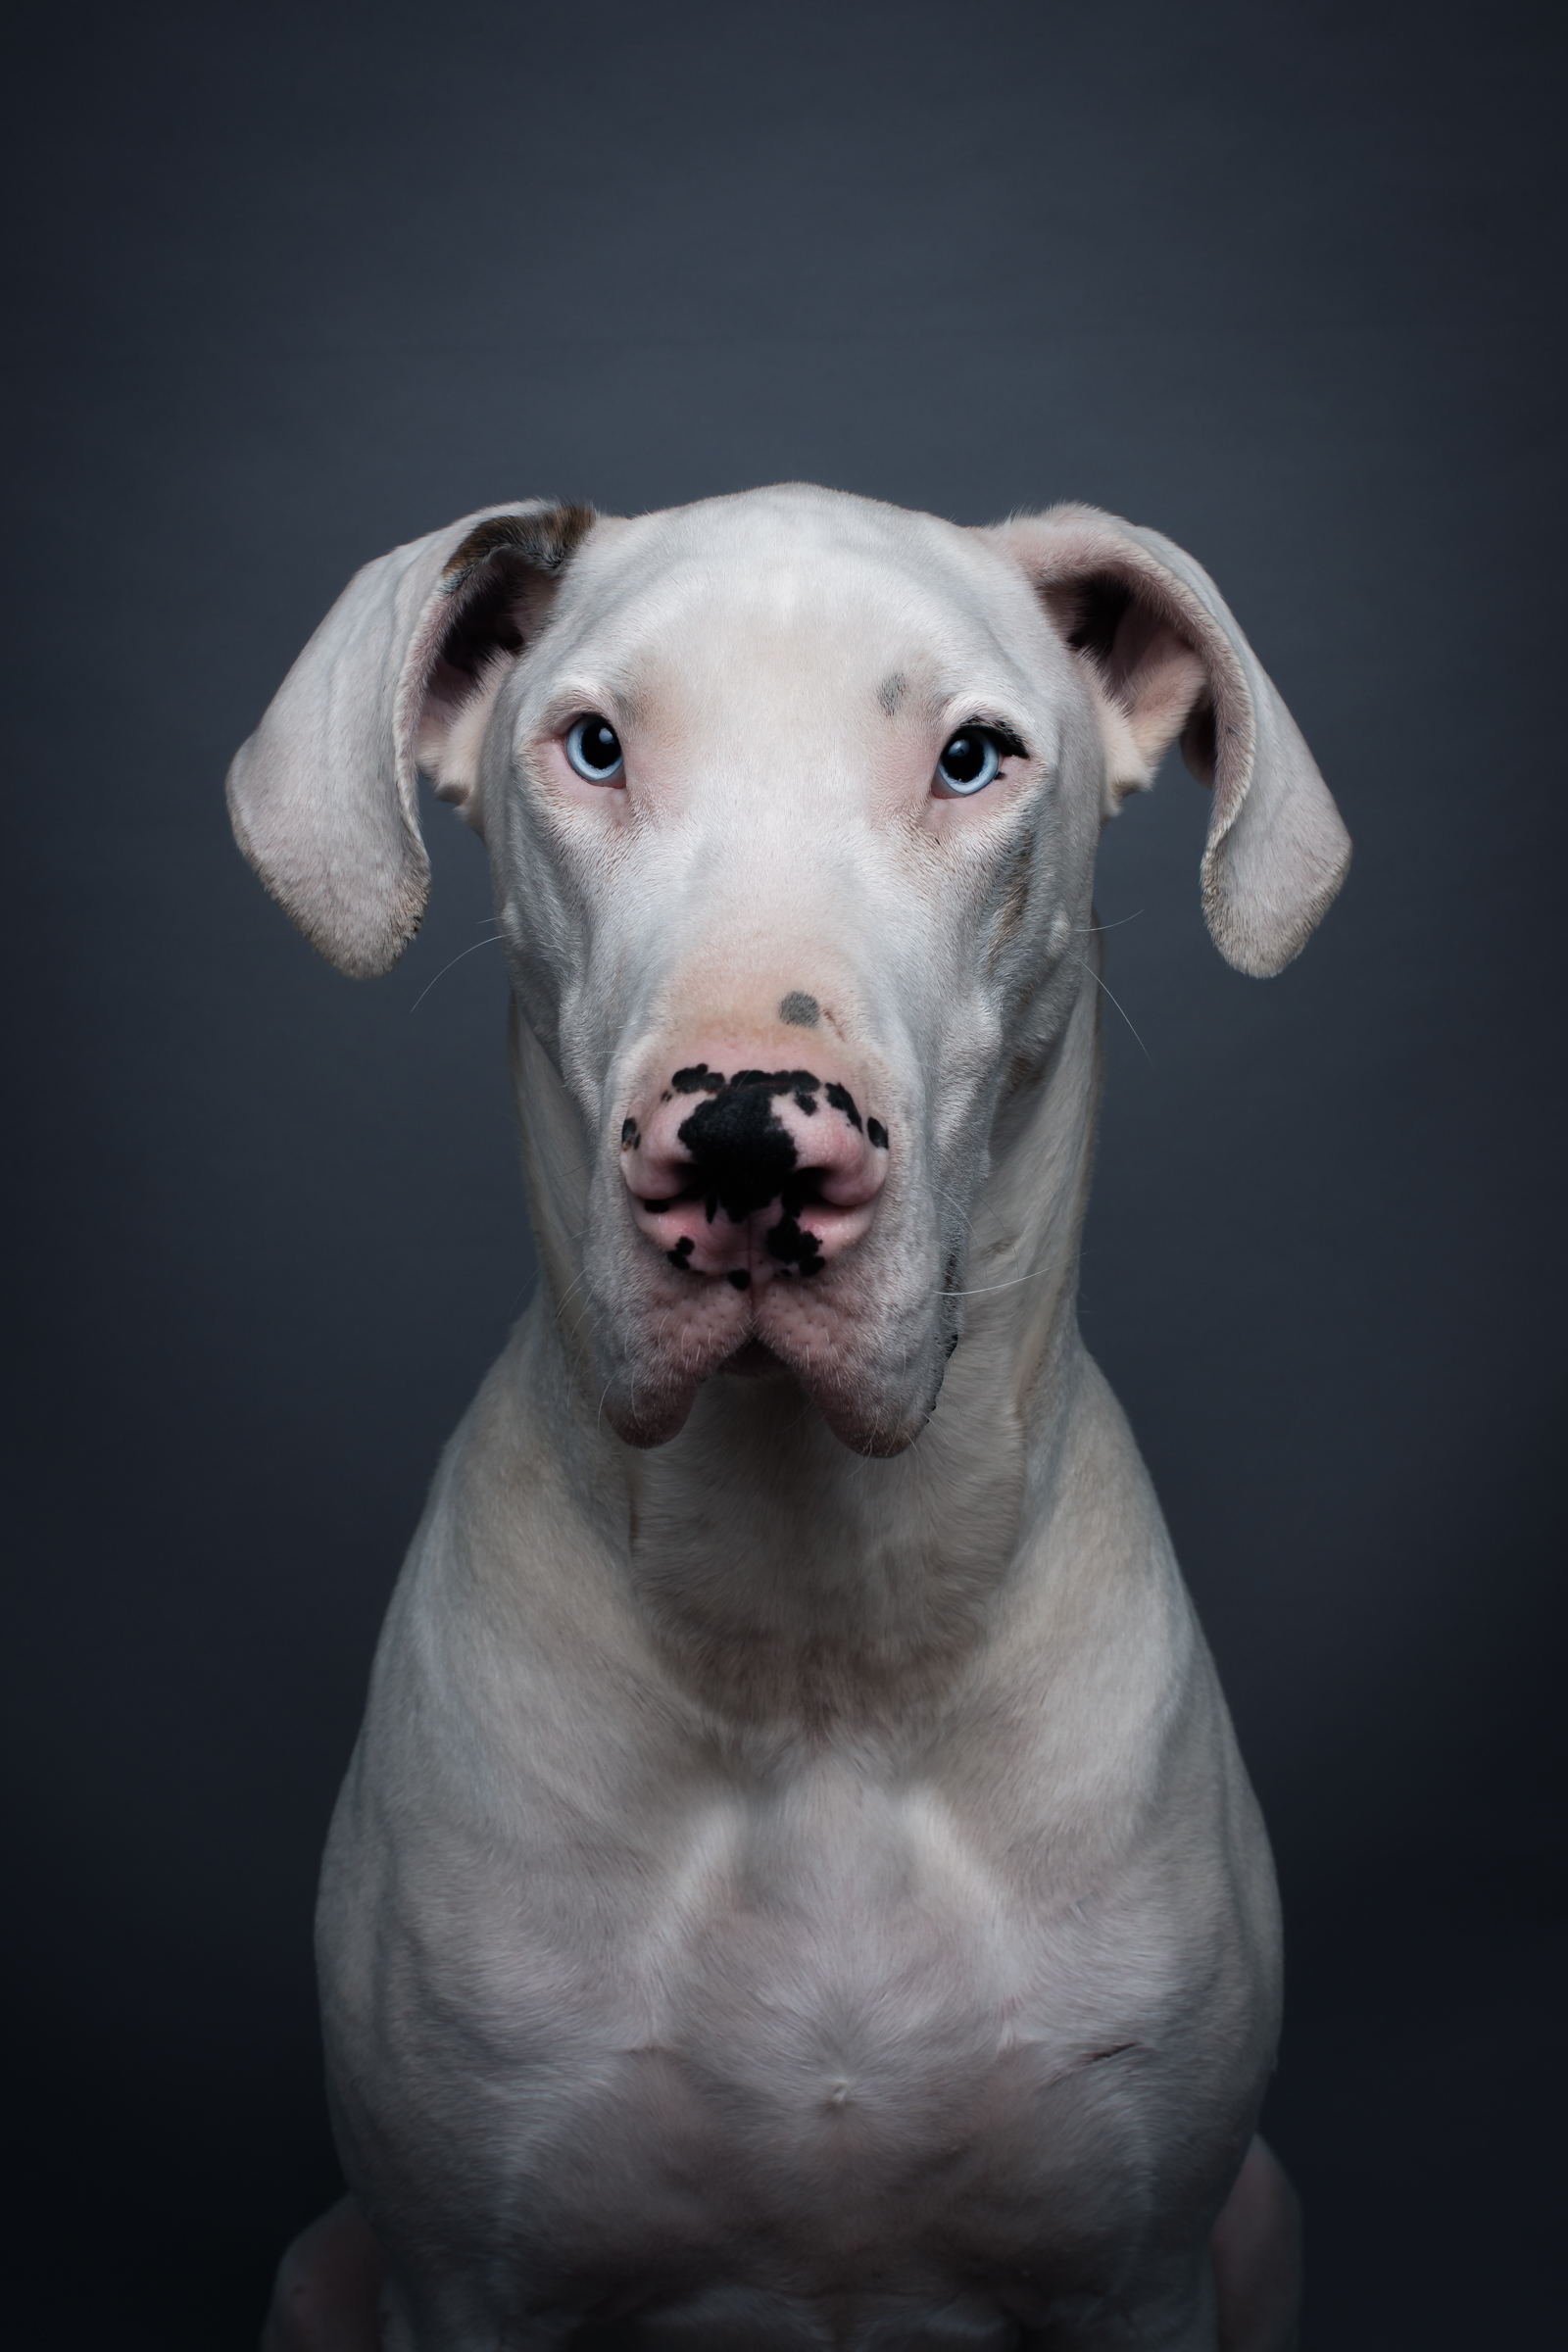 Pet_photographer_potomac_MD_great_dane_pet_portrait_photographer_frederick_MD_professional_photographer.jpg